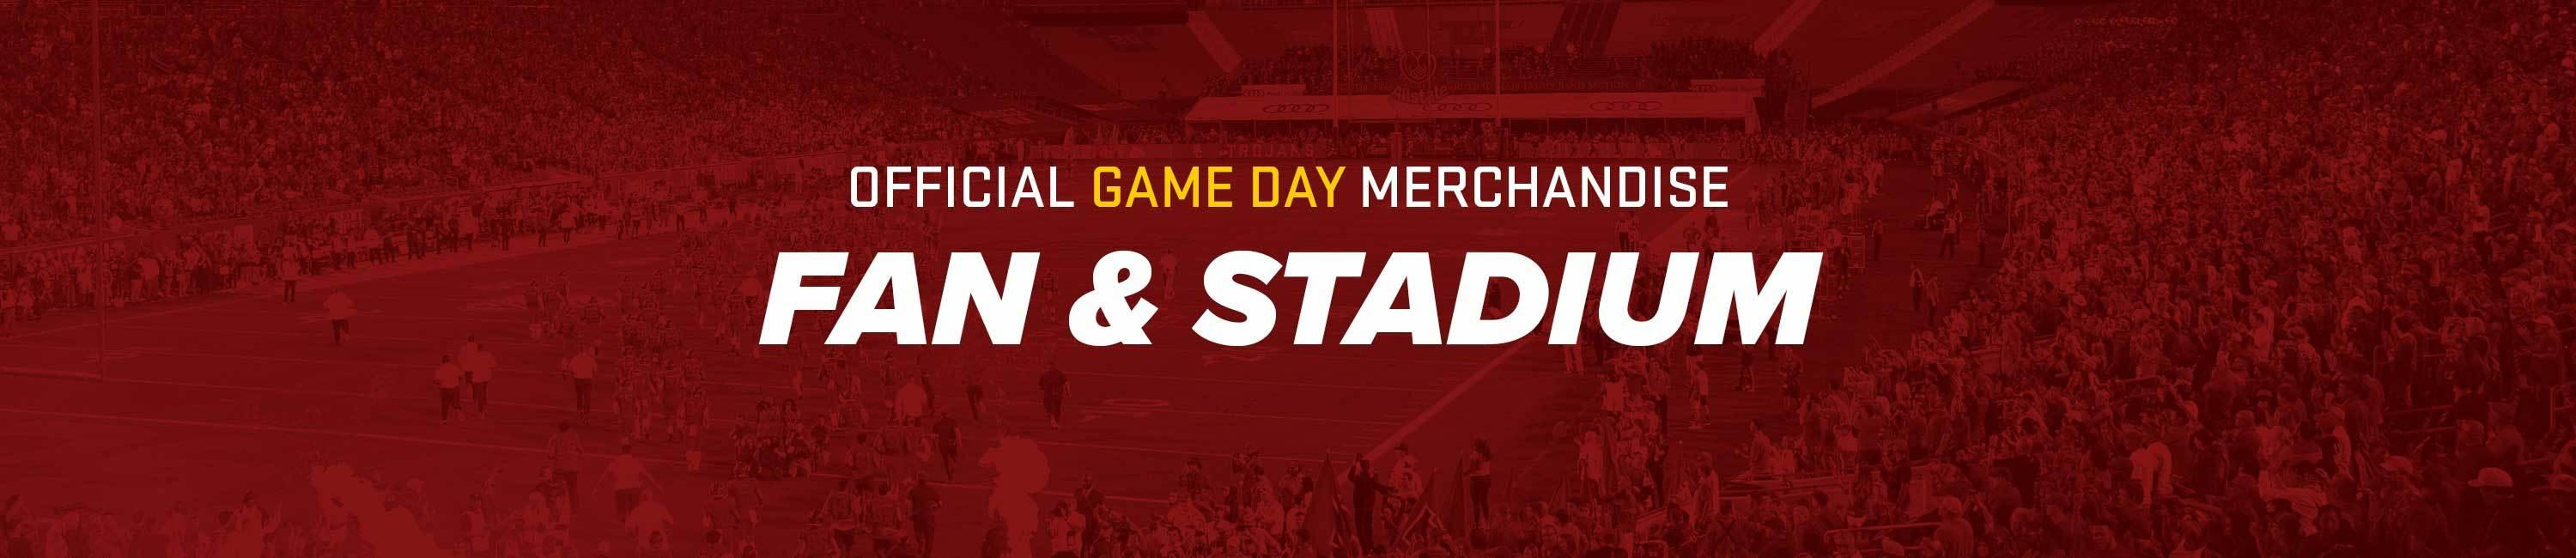 USC Official Game Day Fan & Stadium